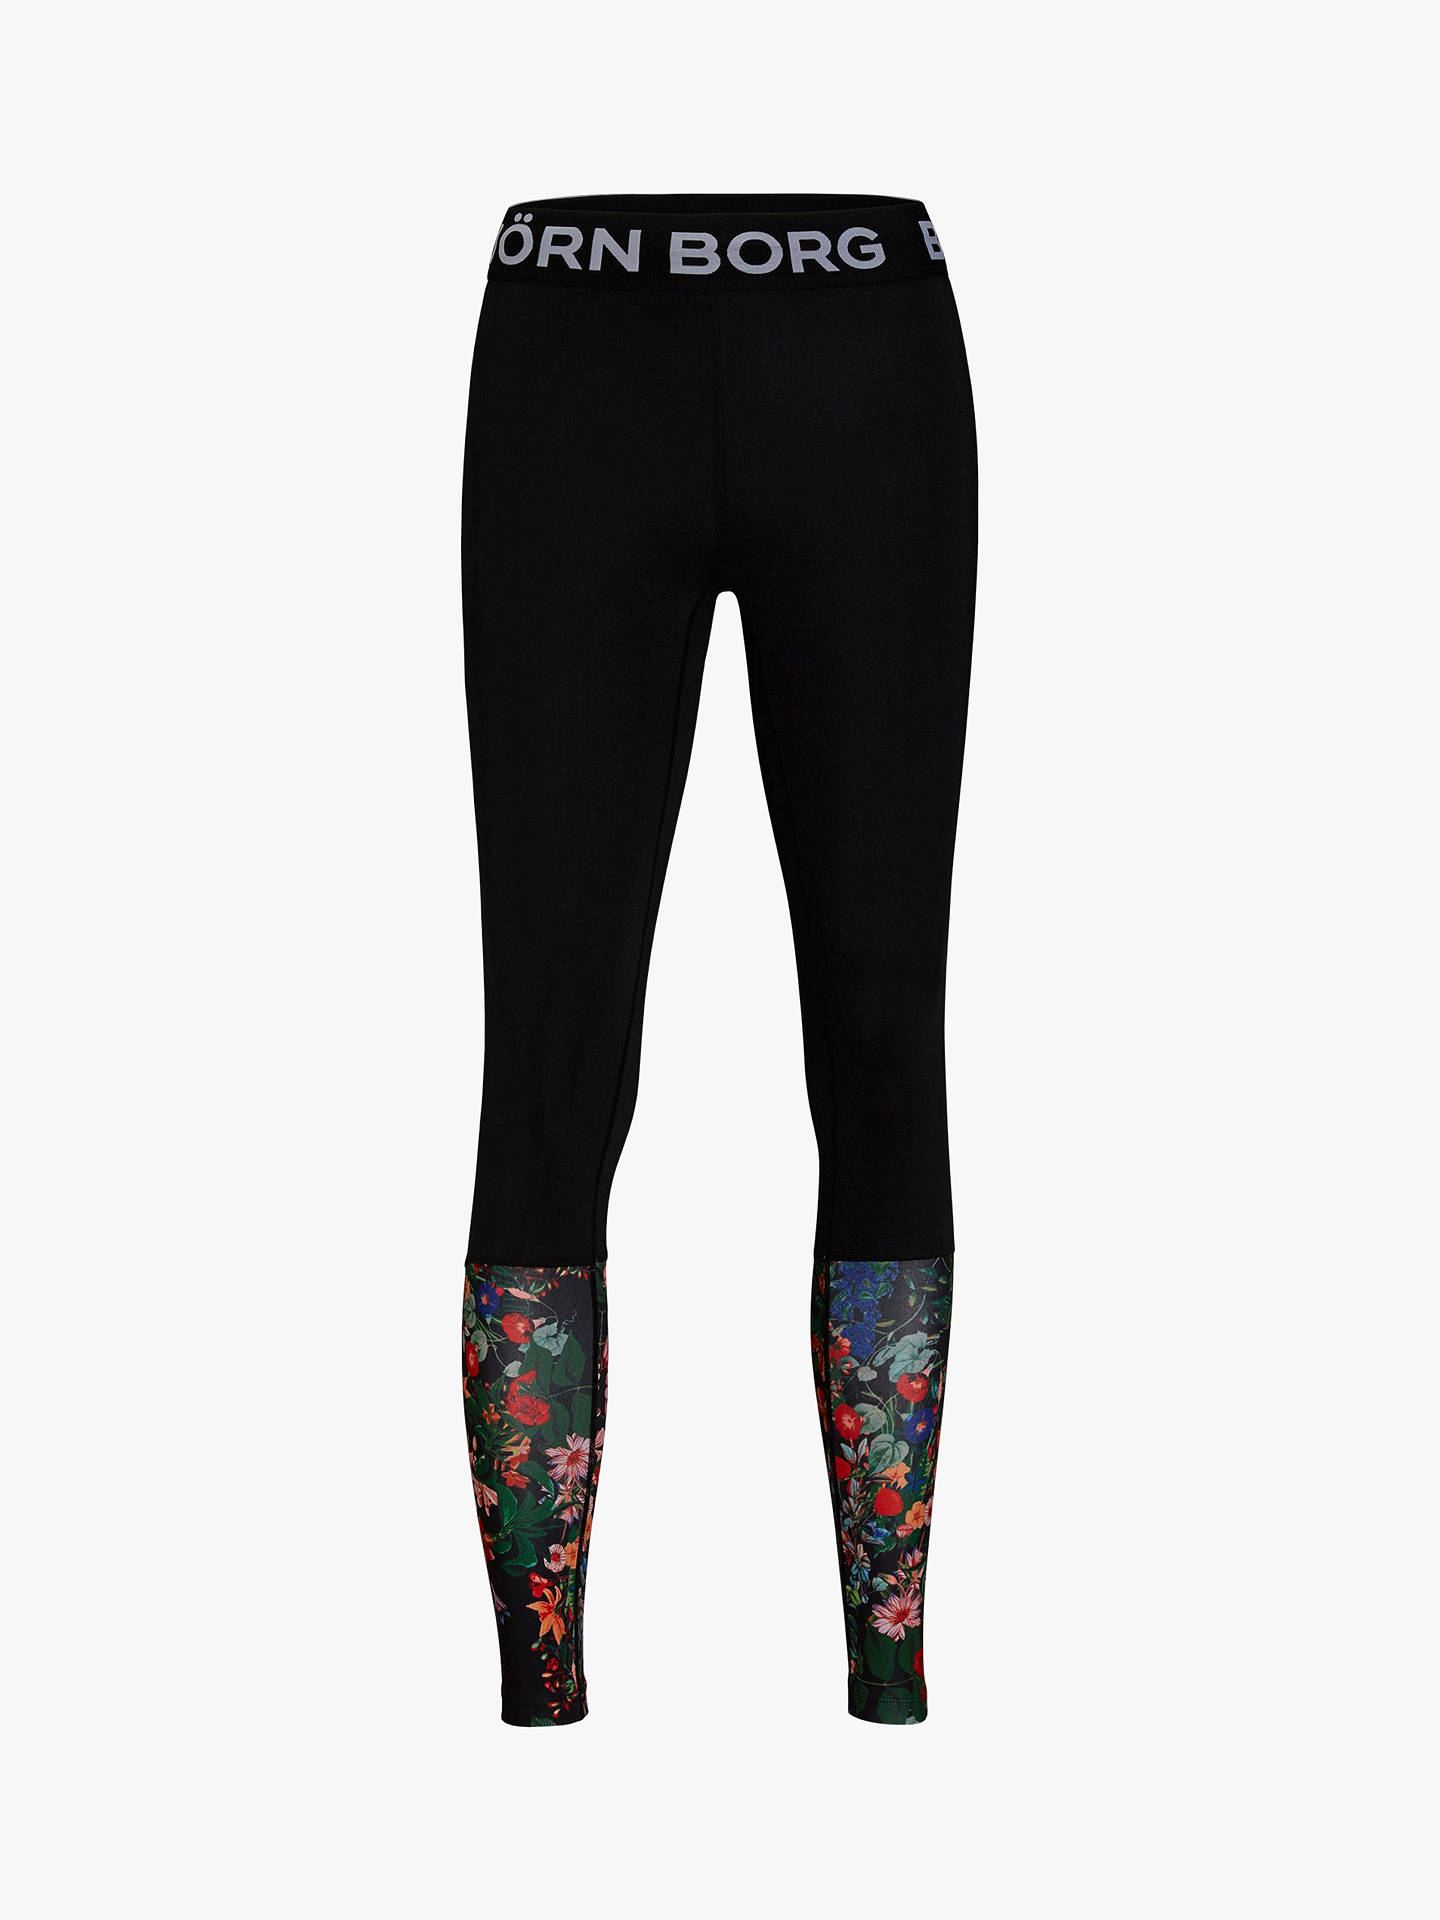 607d0f3023f Buy Björn Borg Connie Floral Training Tights, Black, L Online at  johnlewis.com ...